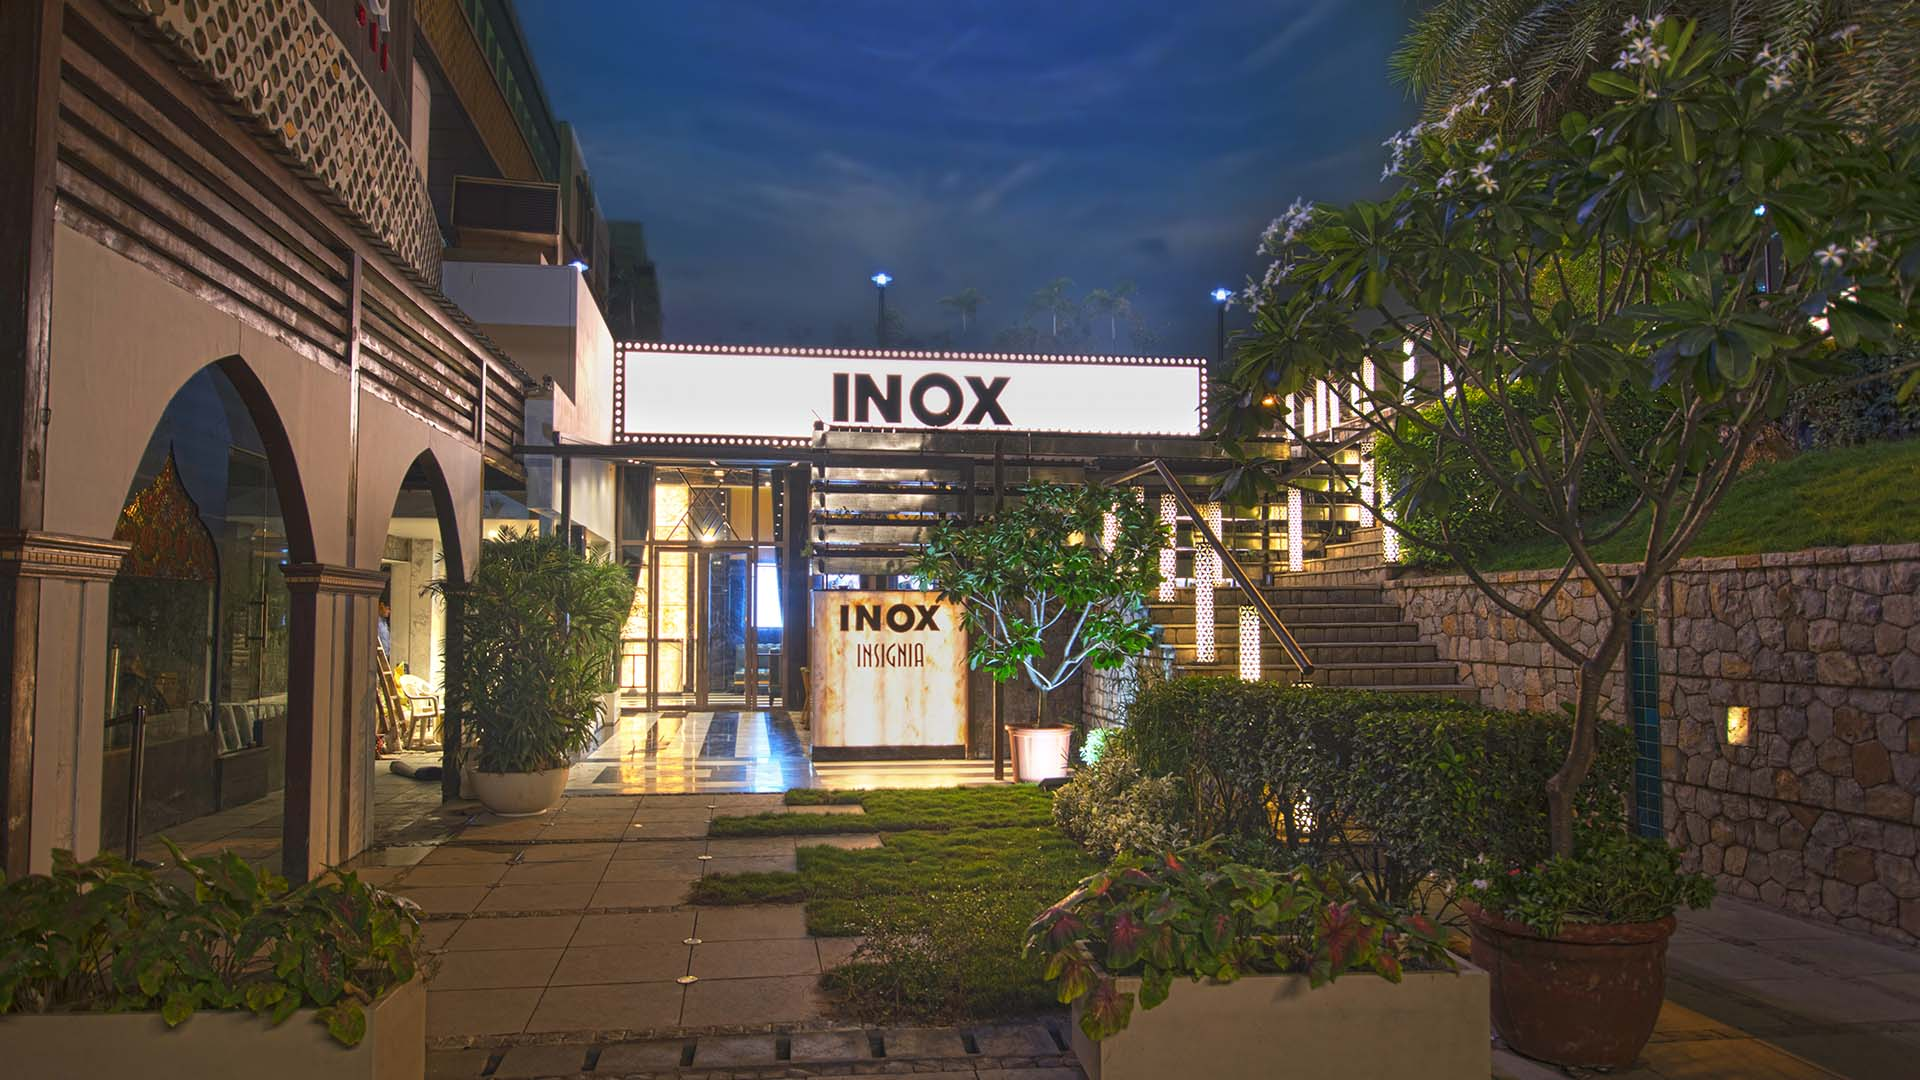 inox-insignia-photos-2